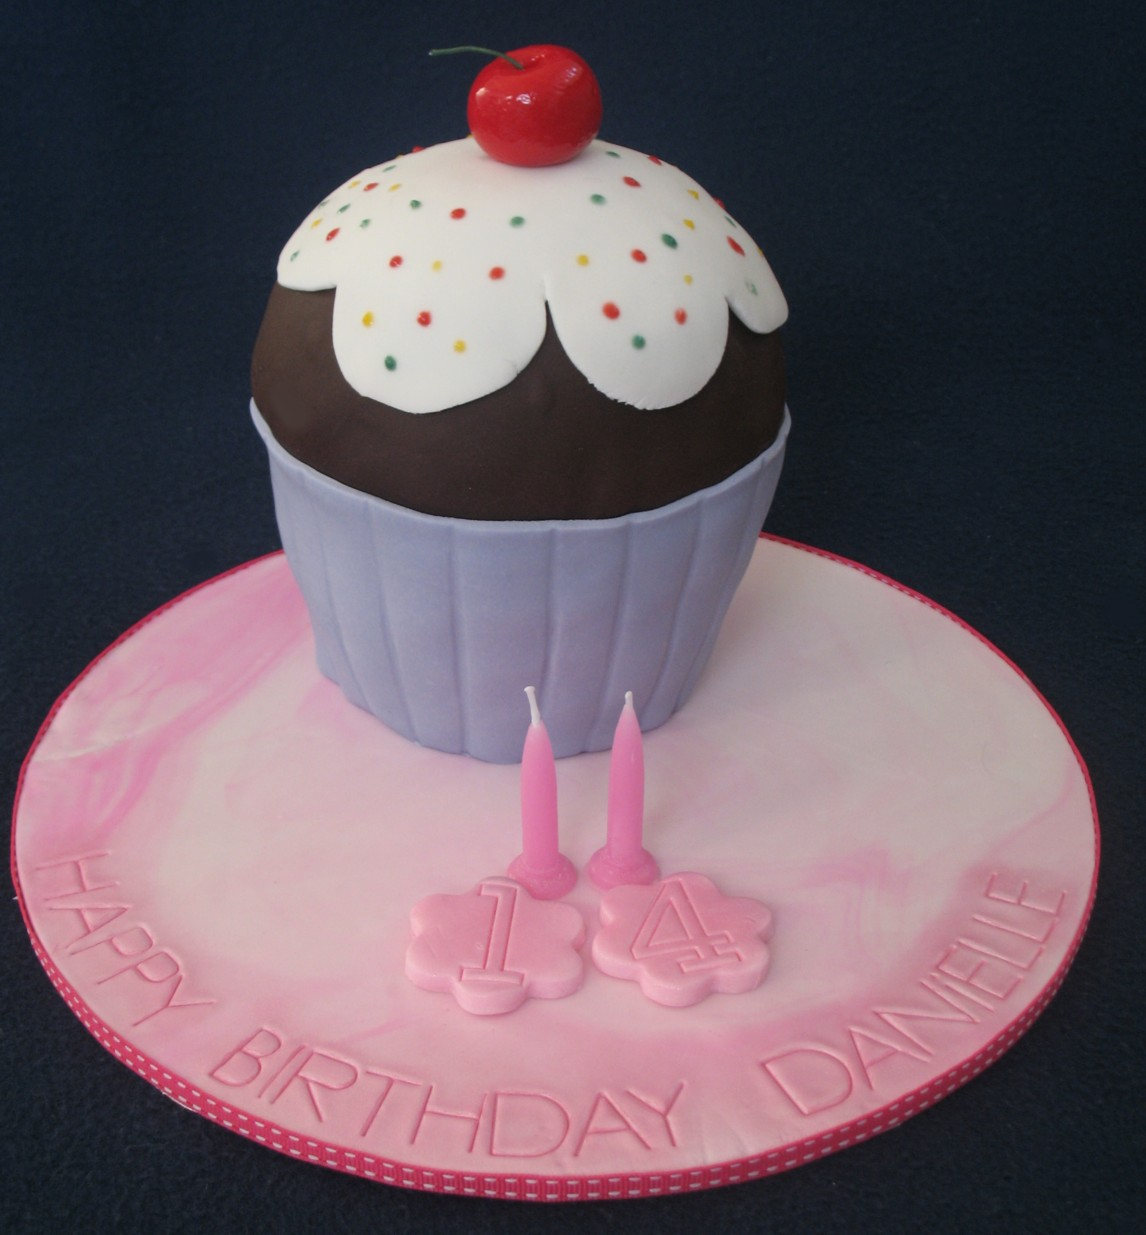 A Giant Cupcake Mini Birthday Cake